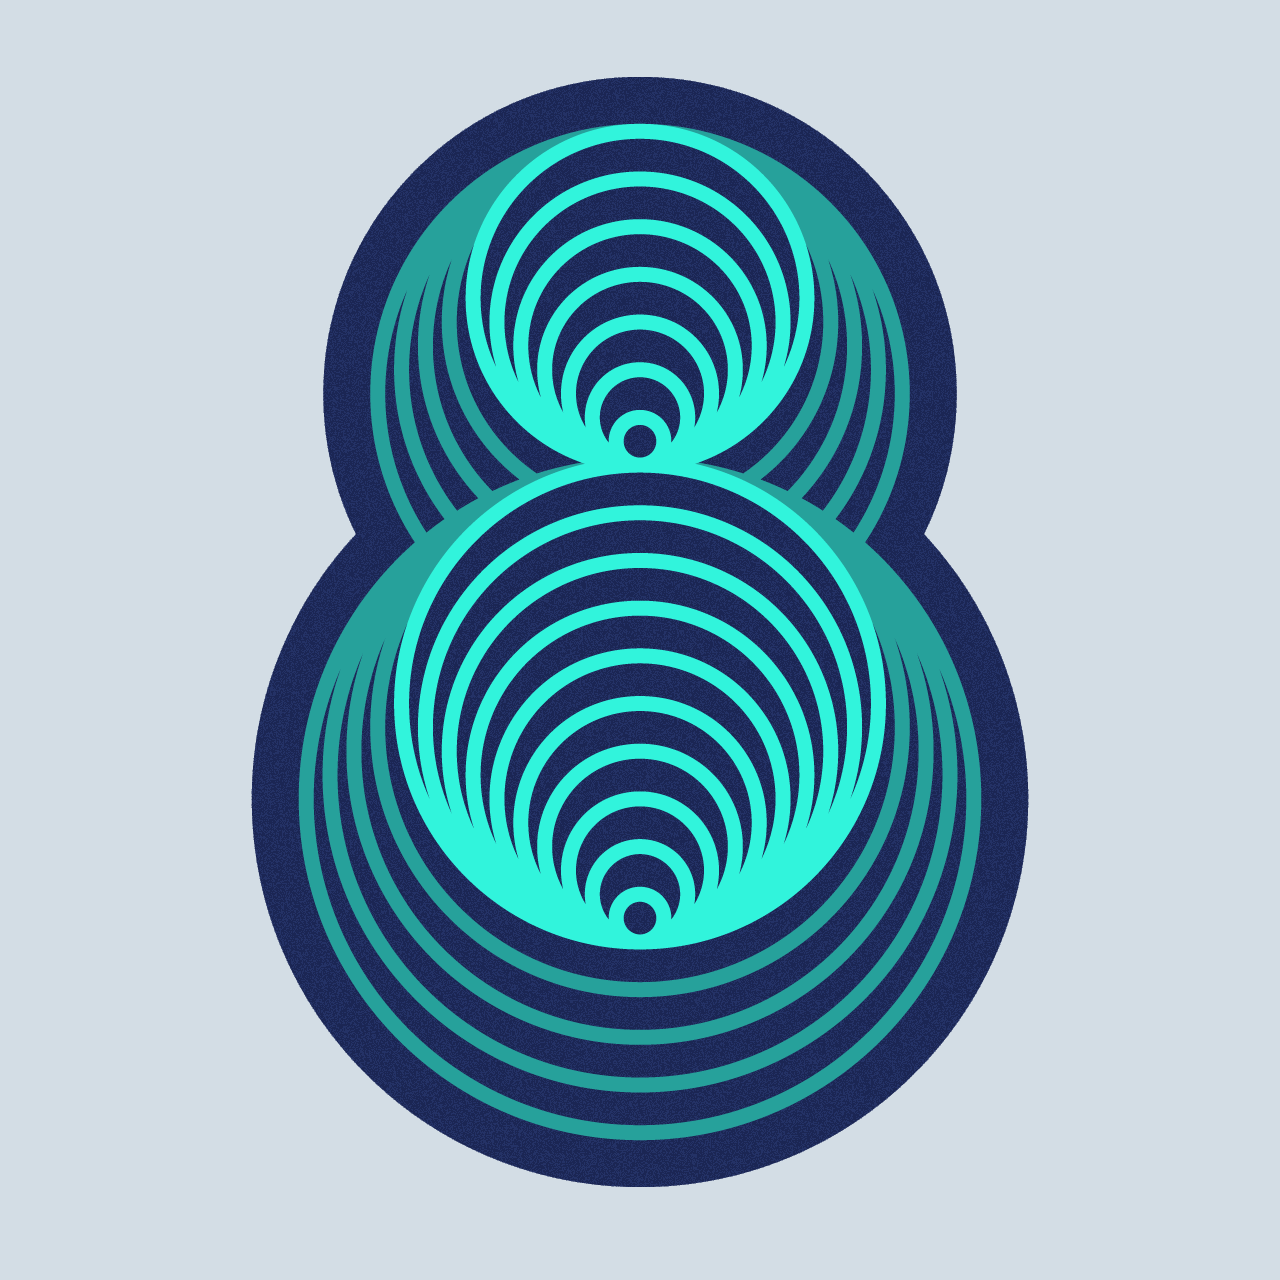 My 8 submission for 36 Days of Type